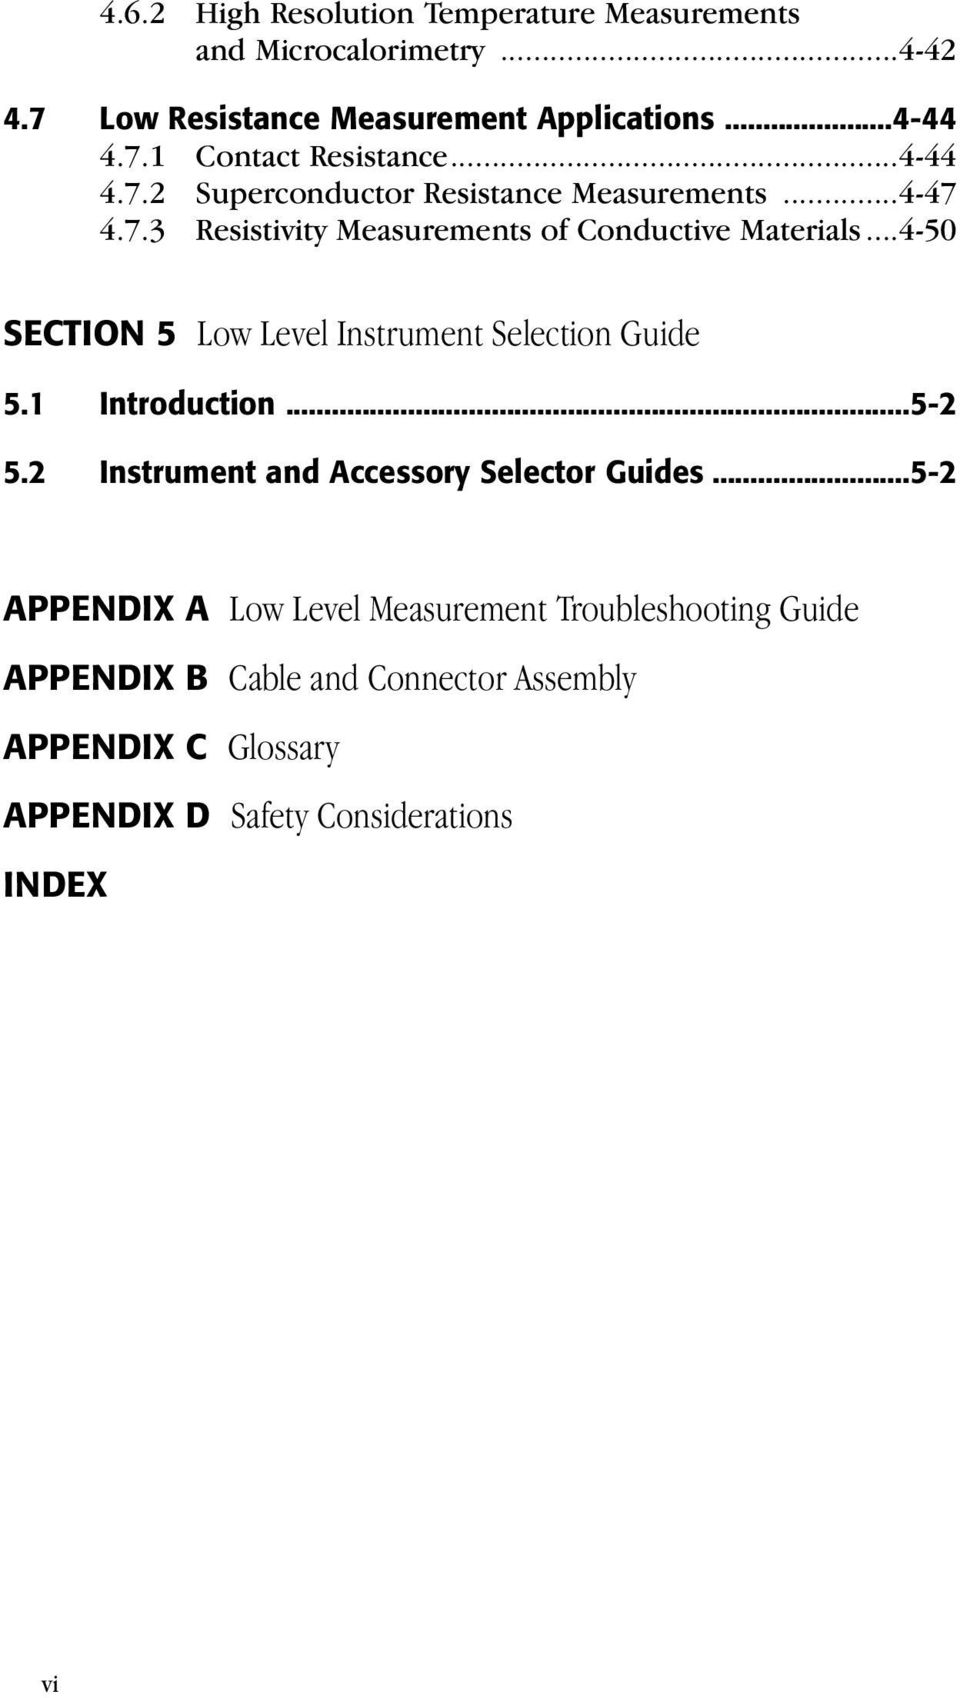 ..4-50 SECTION 5 Low Level Instrument Selection Guide 5.1 Introduction...5-2 5.2 Instrument and Accessory Selector Guides.